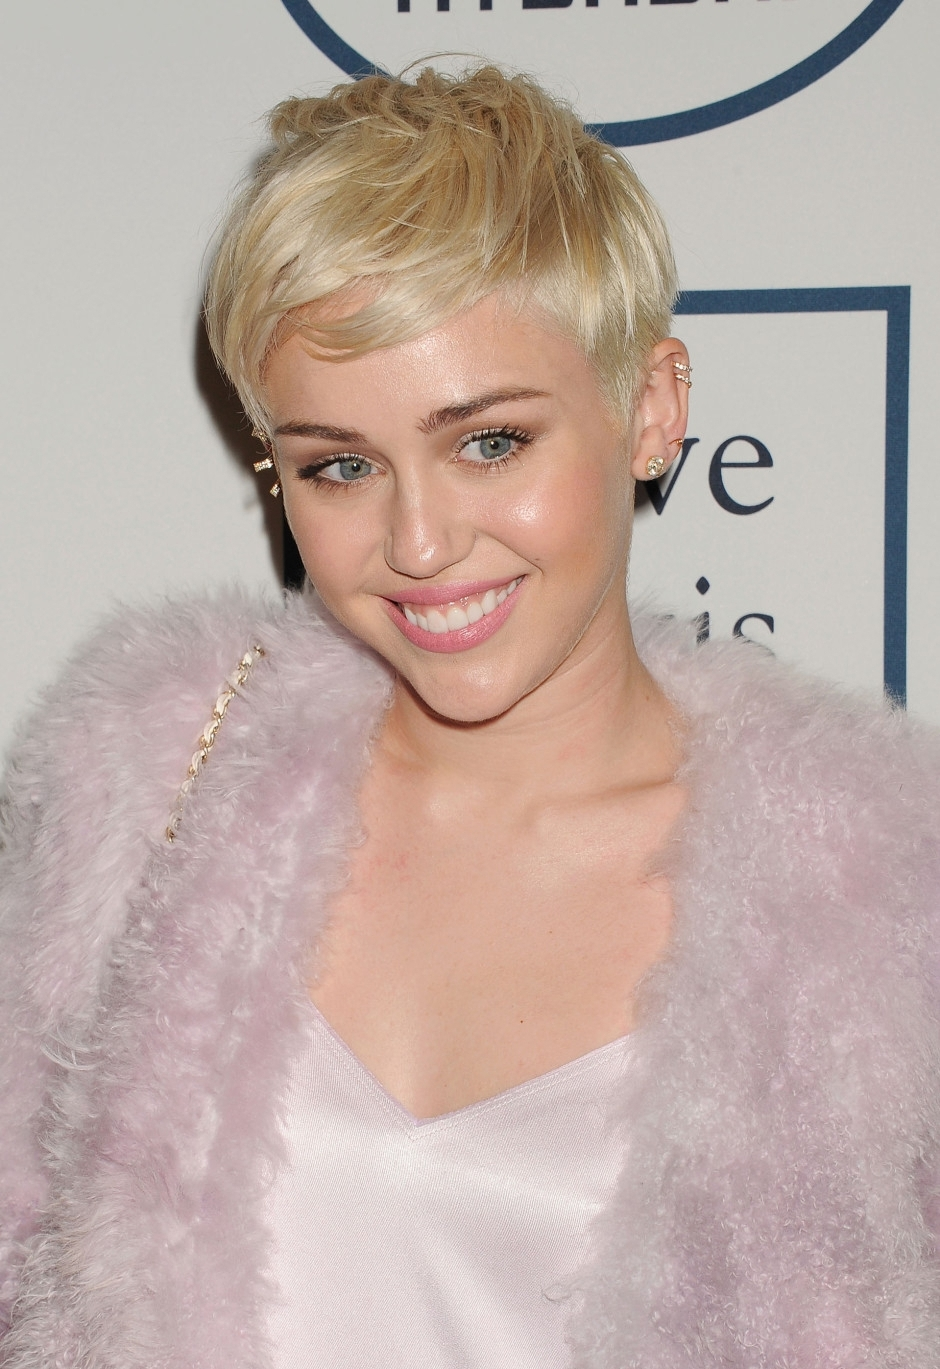 Haircuts For Short Hair With Bangs For Heart Shaped Face The Right In Current Pixie Hairstyles For Heart Shaped Face (View 5 of 15)